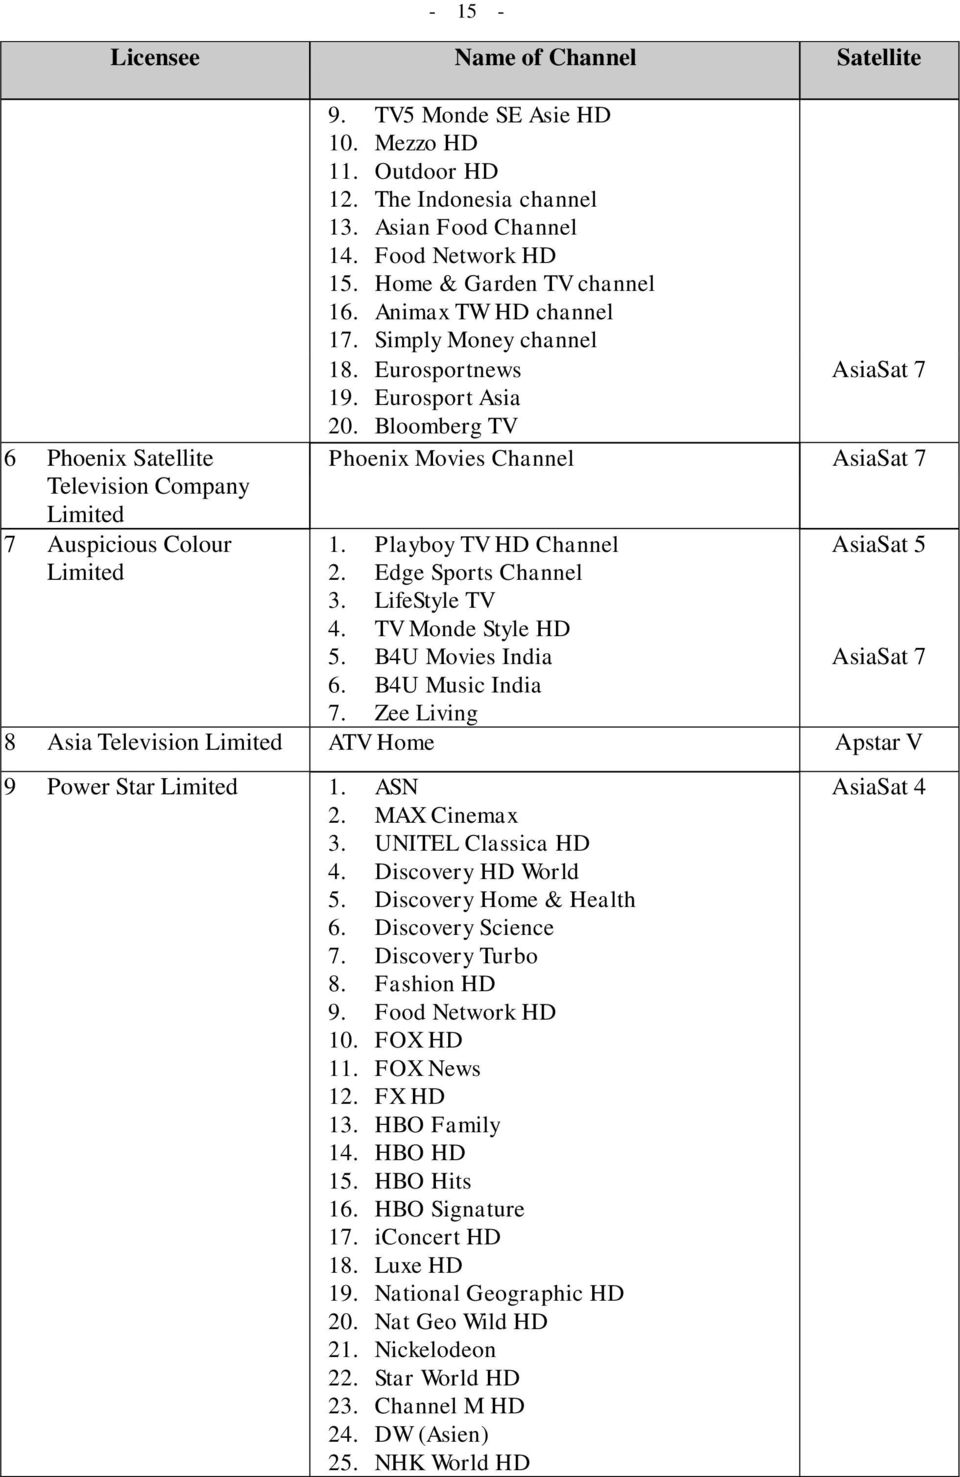 A List of Licensed Broadcasting Services in Hong Kong (As at